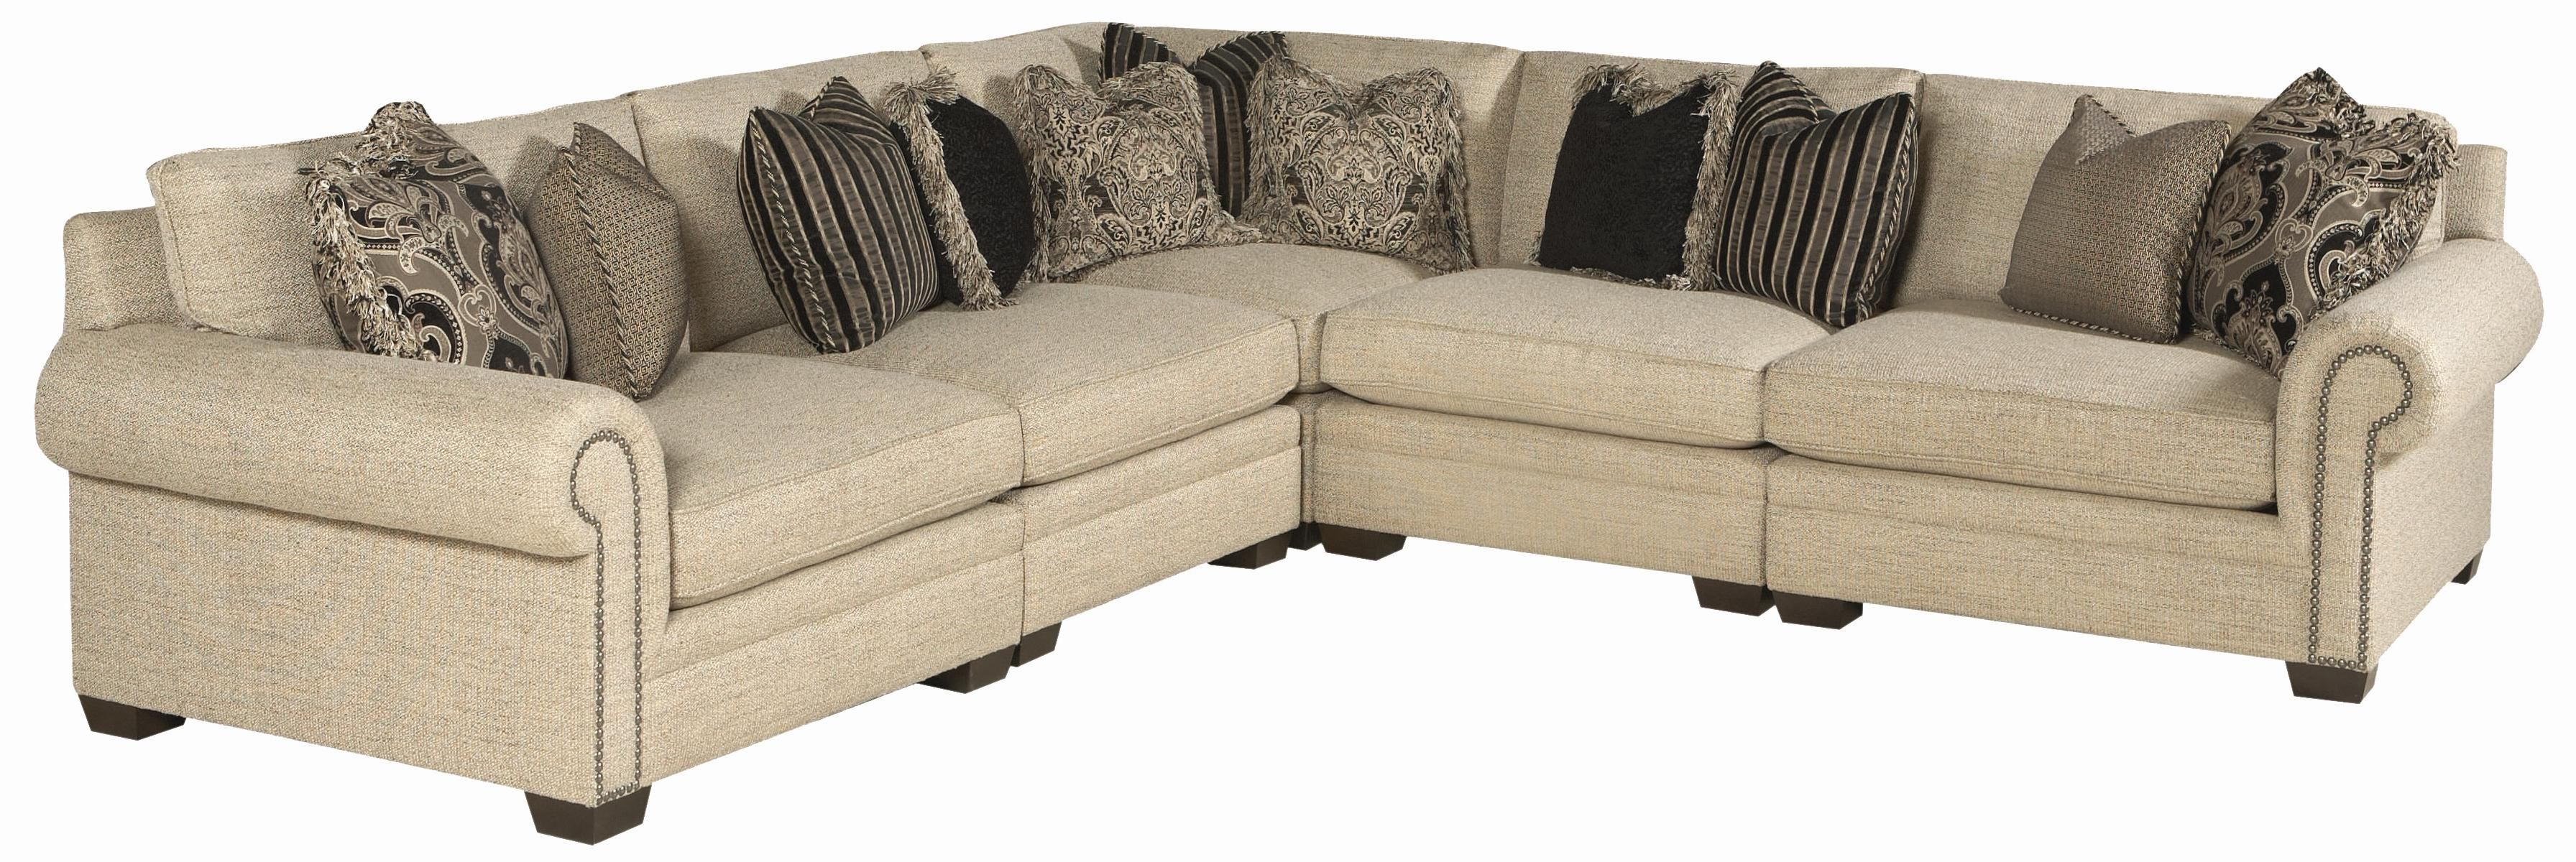 Grandview 5 PieceTraditional Sectional Sofa By Bernhardt   Sprintz Furniture    Sofa Sectional Nashville, Franklin